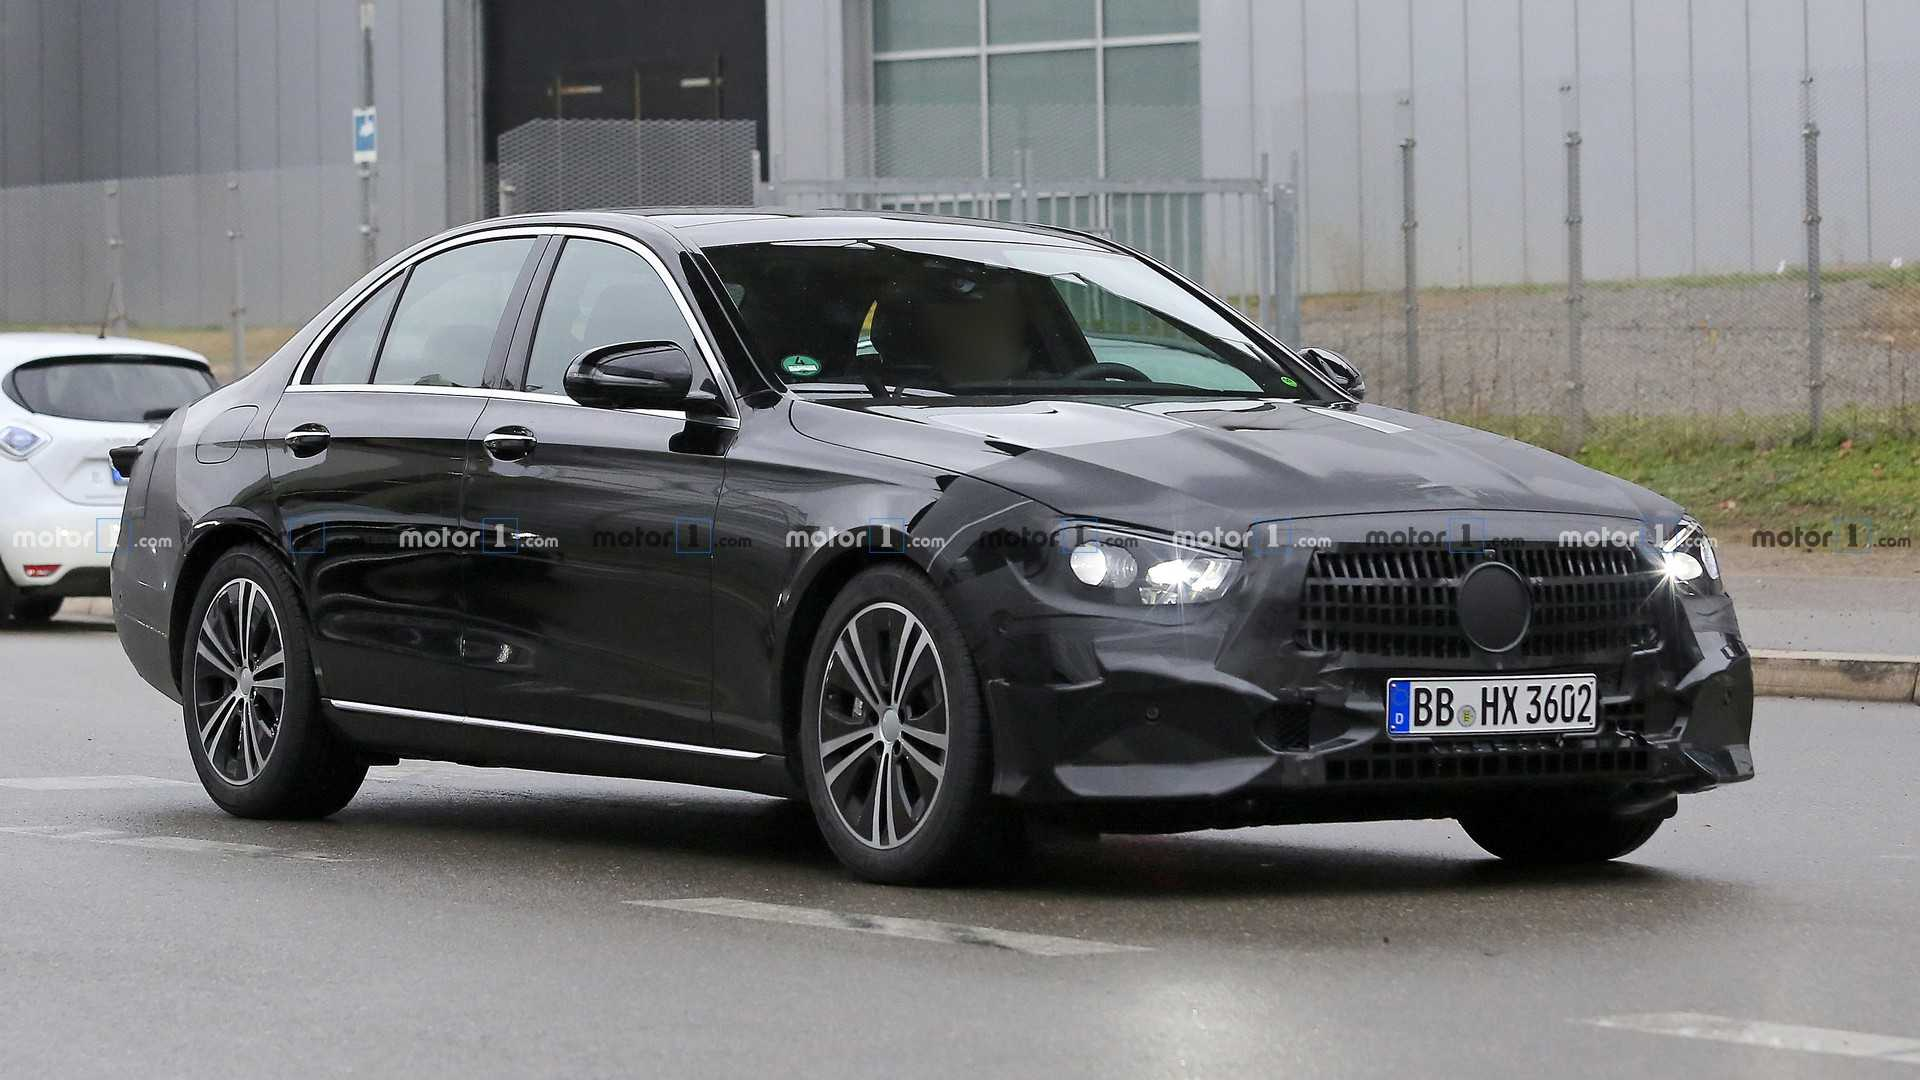 Mercedes E-Class Sedan Facelift Spied For The First Time